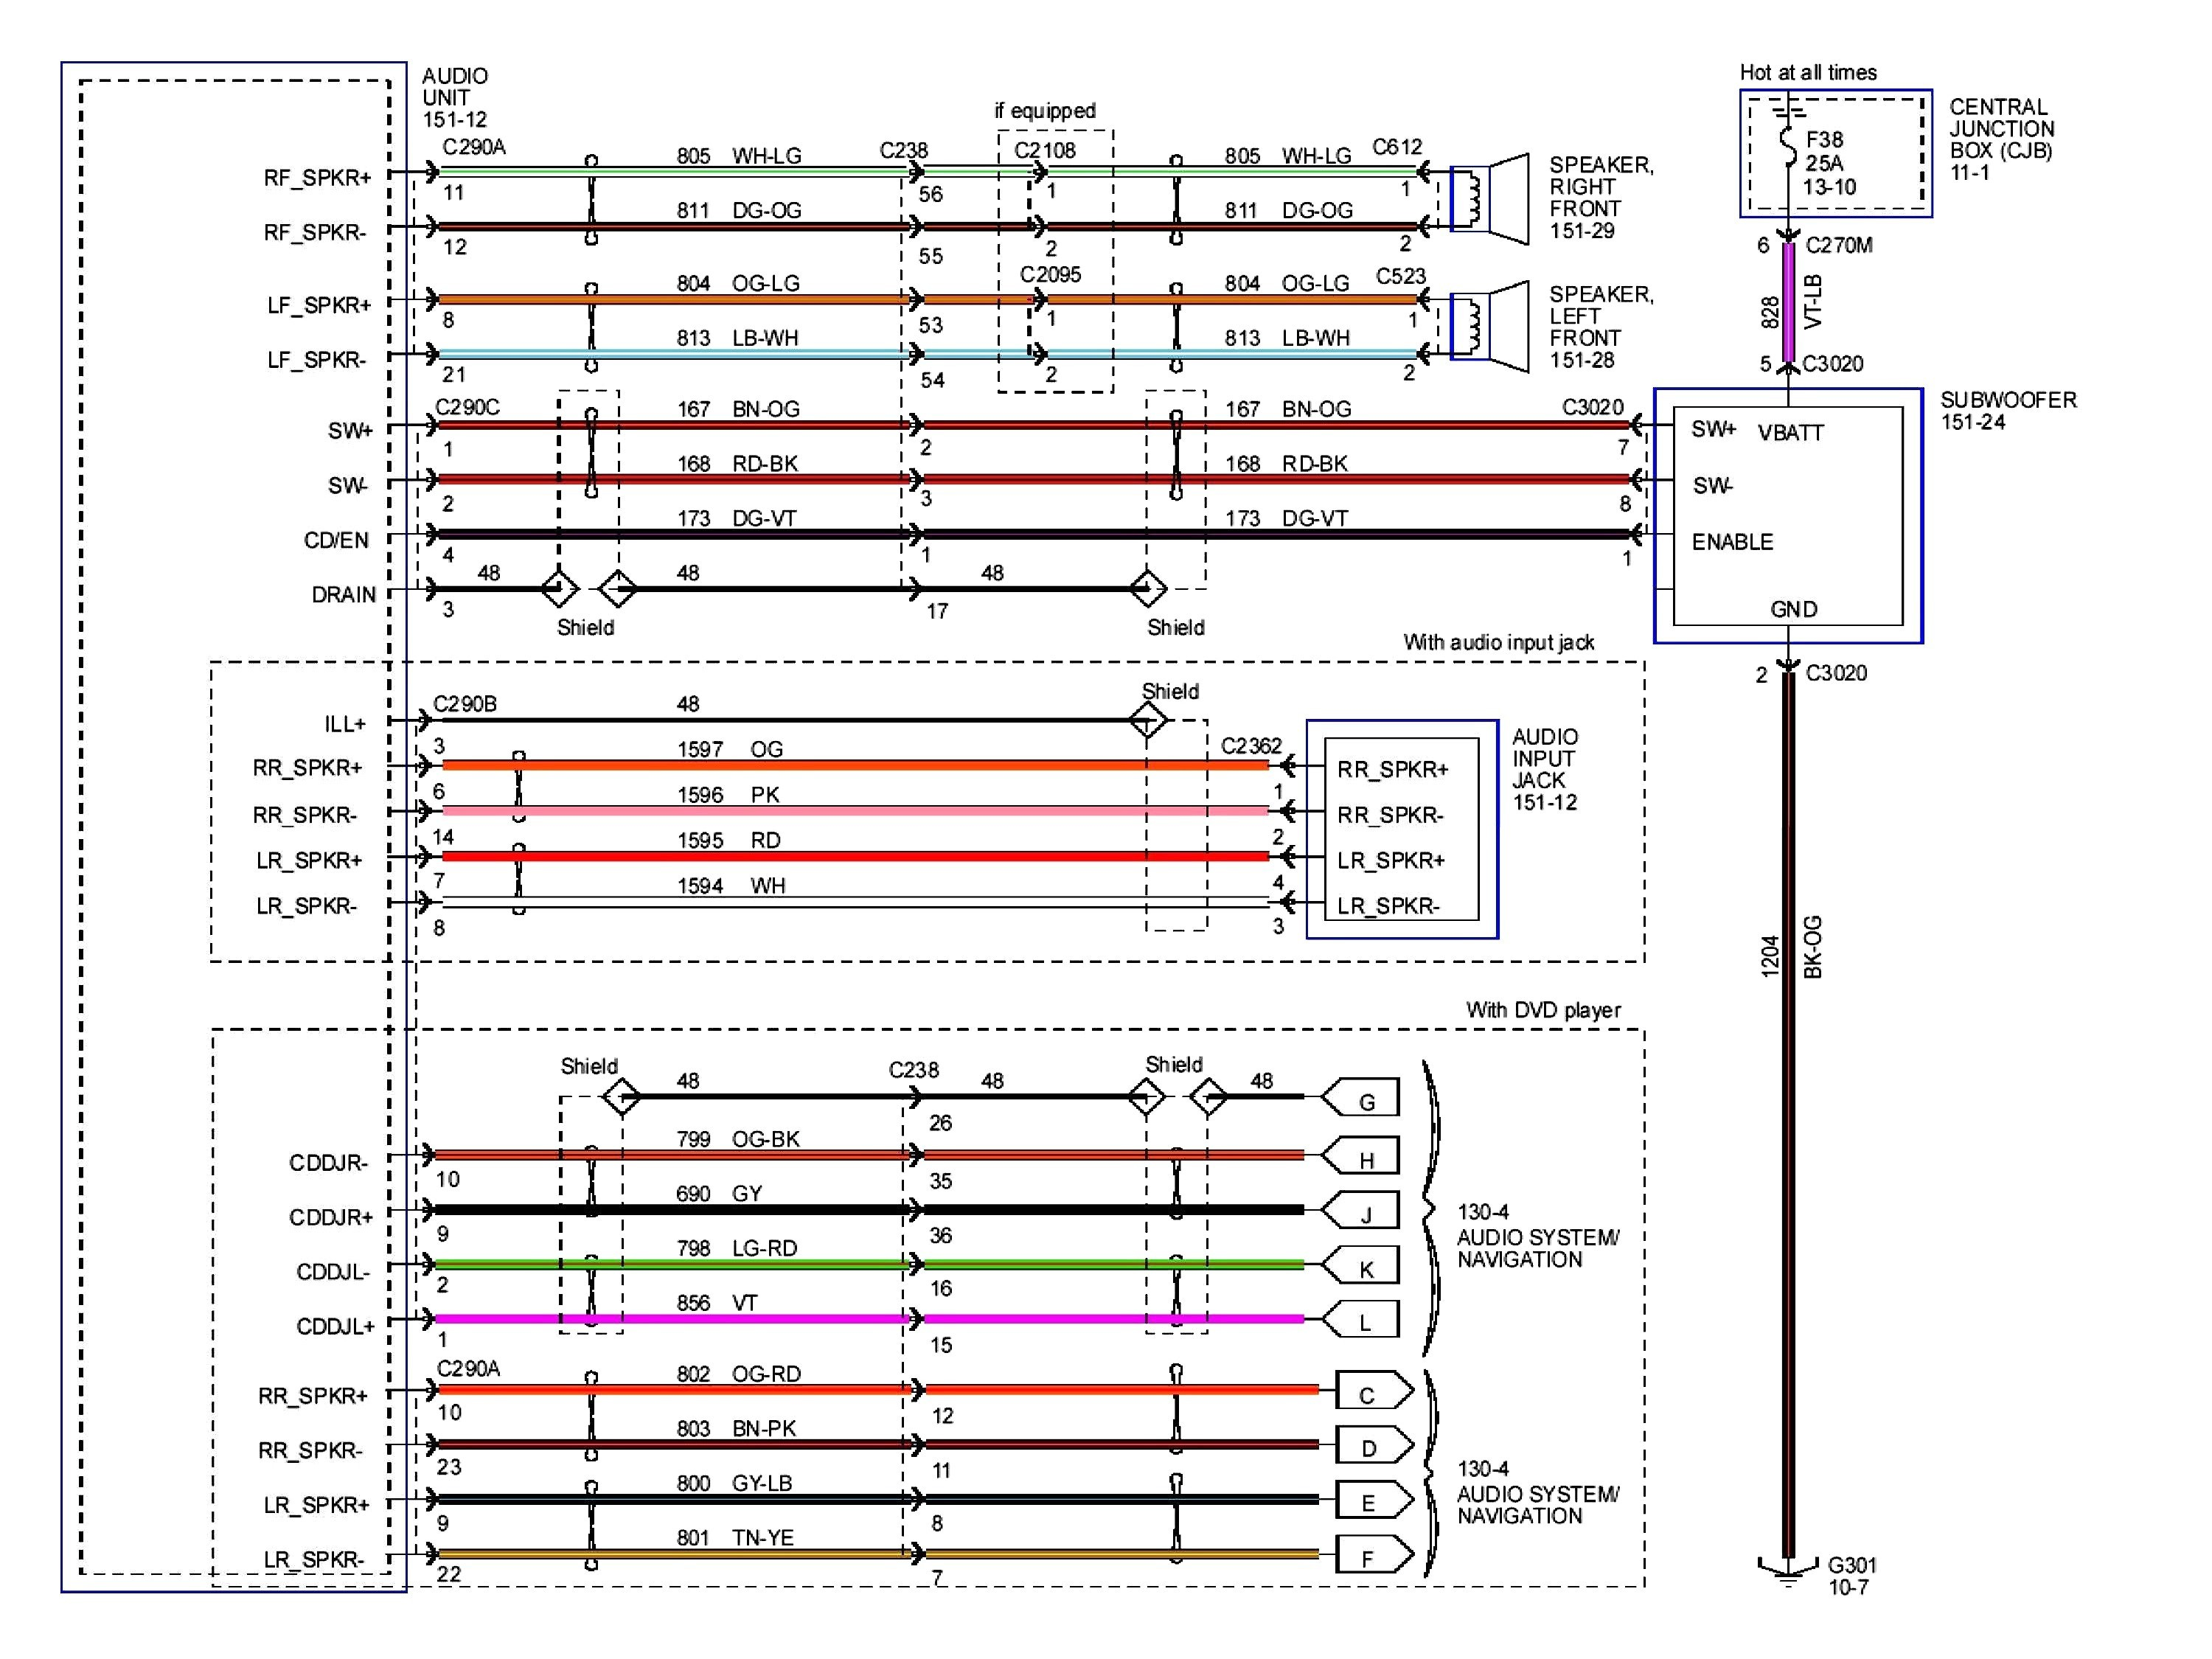 96 ford Ranger Wiring Diagram Inspirational I Need the Wiring Diagram for A 1996 ford Explorer